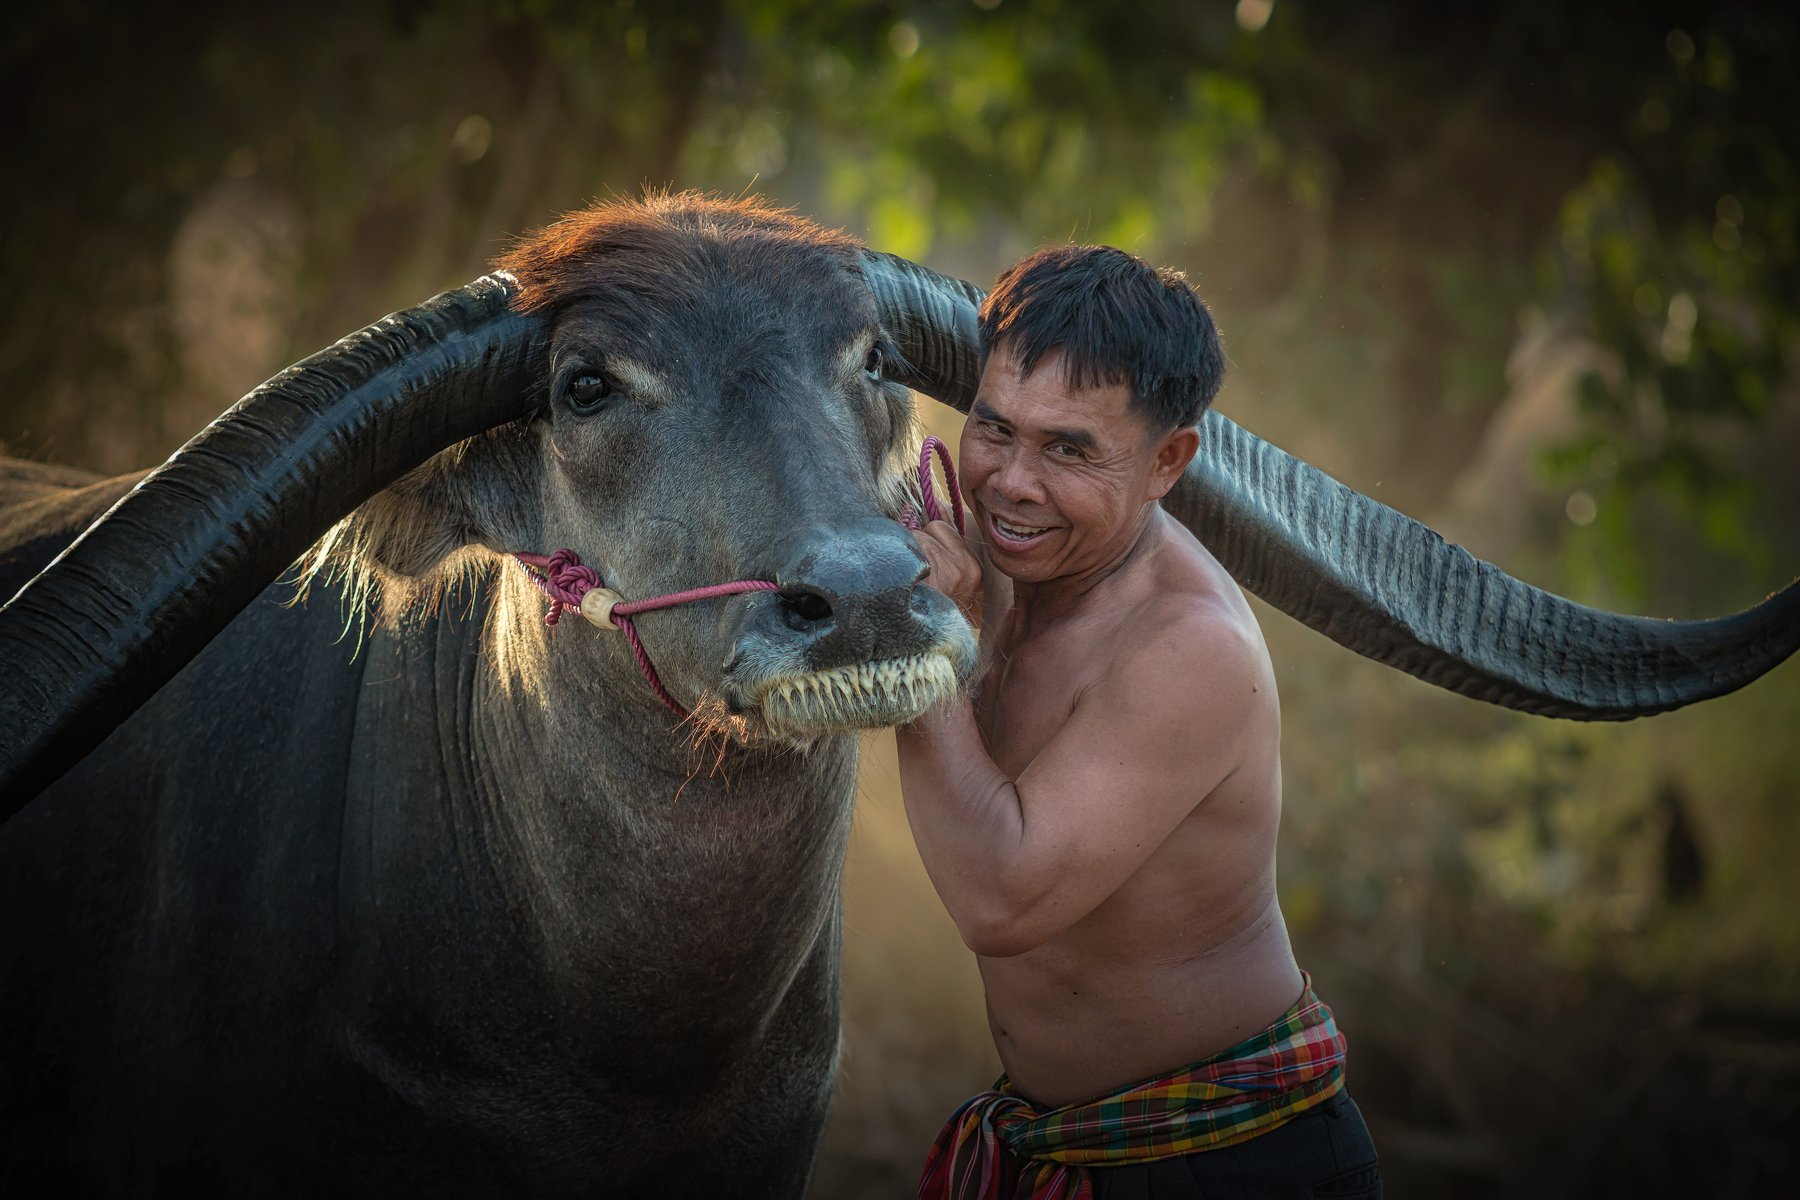 agriculture; animal; asia; asian; beautiful; beauty; buffalo; countryside; couple; culture; cute; face; farm; farmer; farmland; female; field; grass; green; handsome; happiness; happy; laos; leisure; lifestyle; long; love; mammal; meadow; myanmar; nature;, Visoot Uthairam